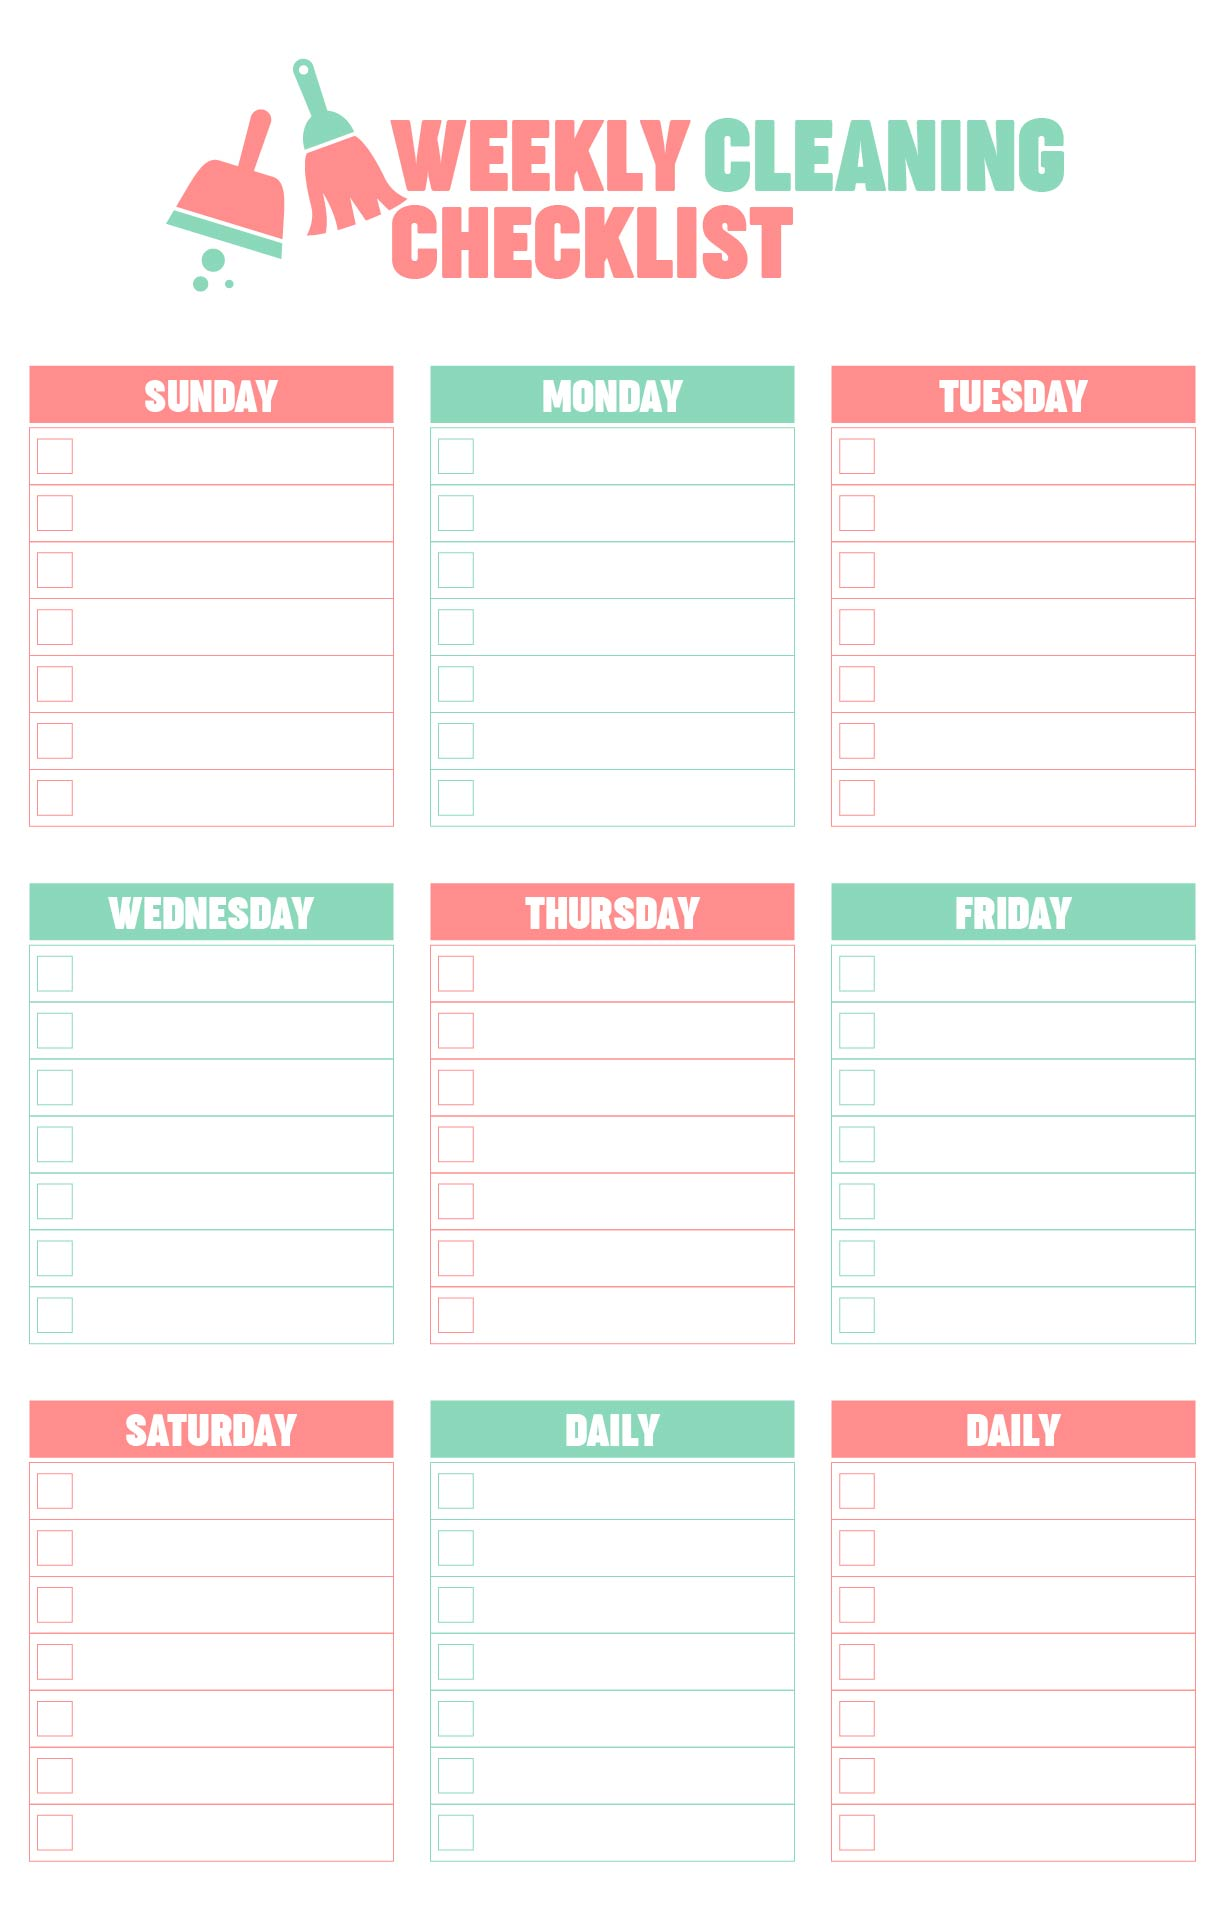 Blank Cleaning Checklist Template